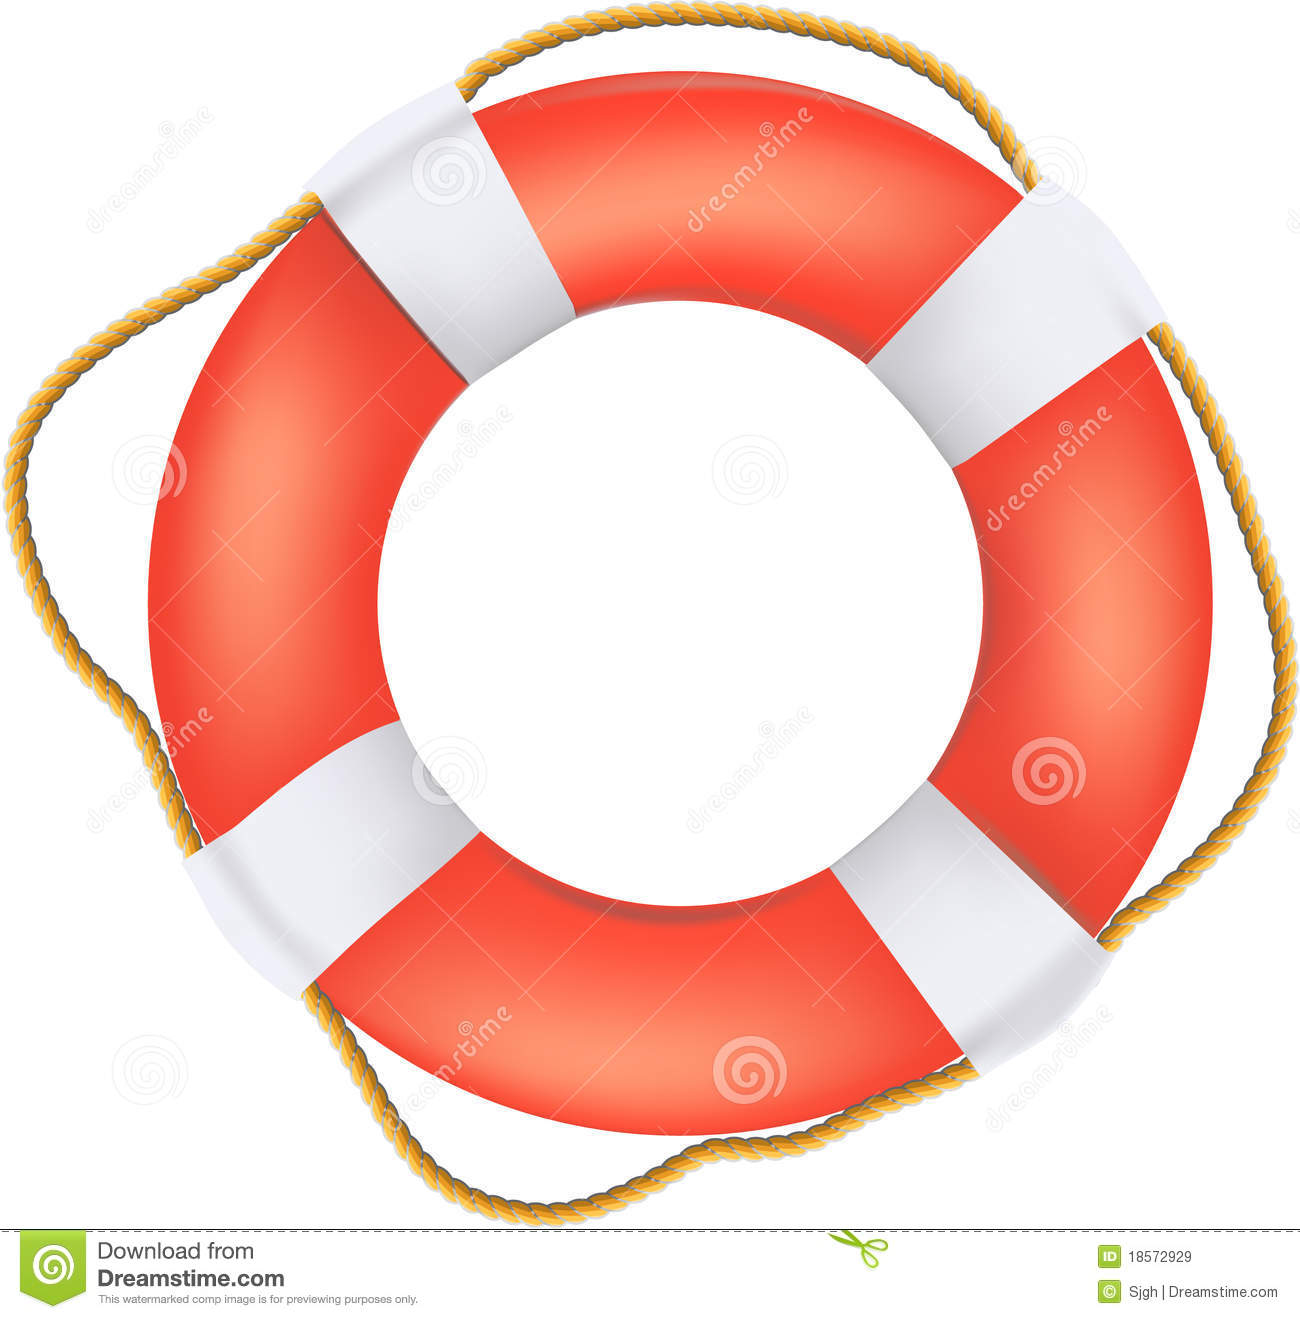 life preserver images free